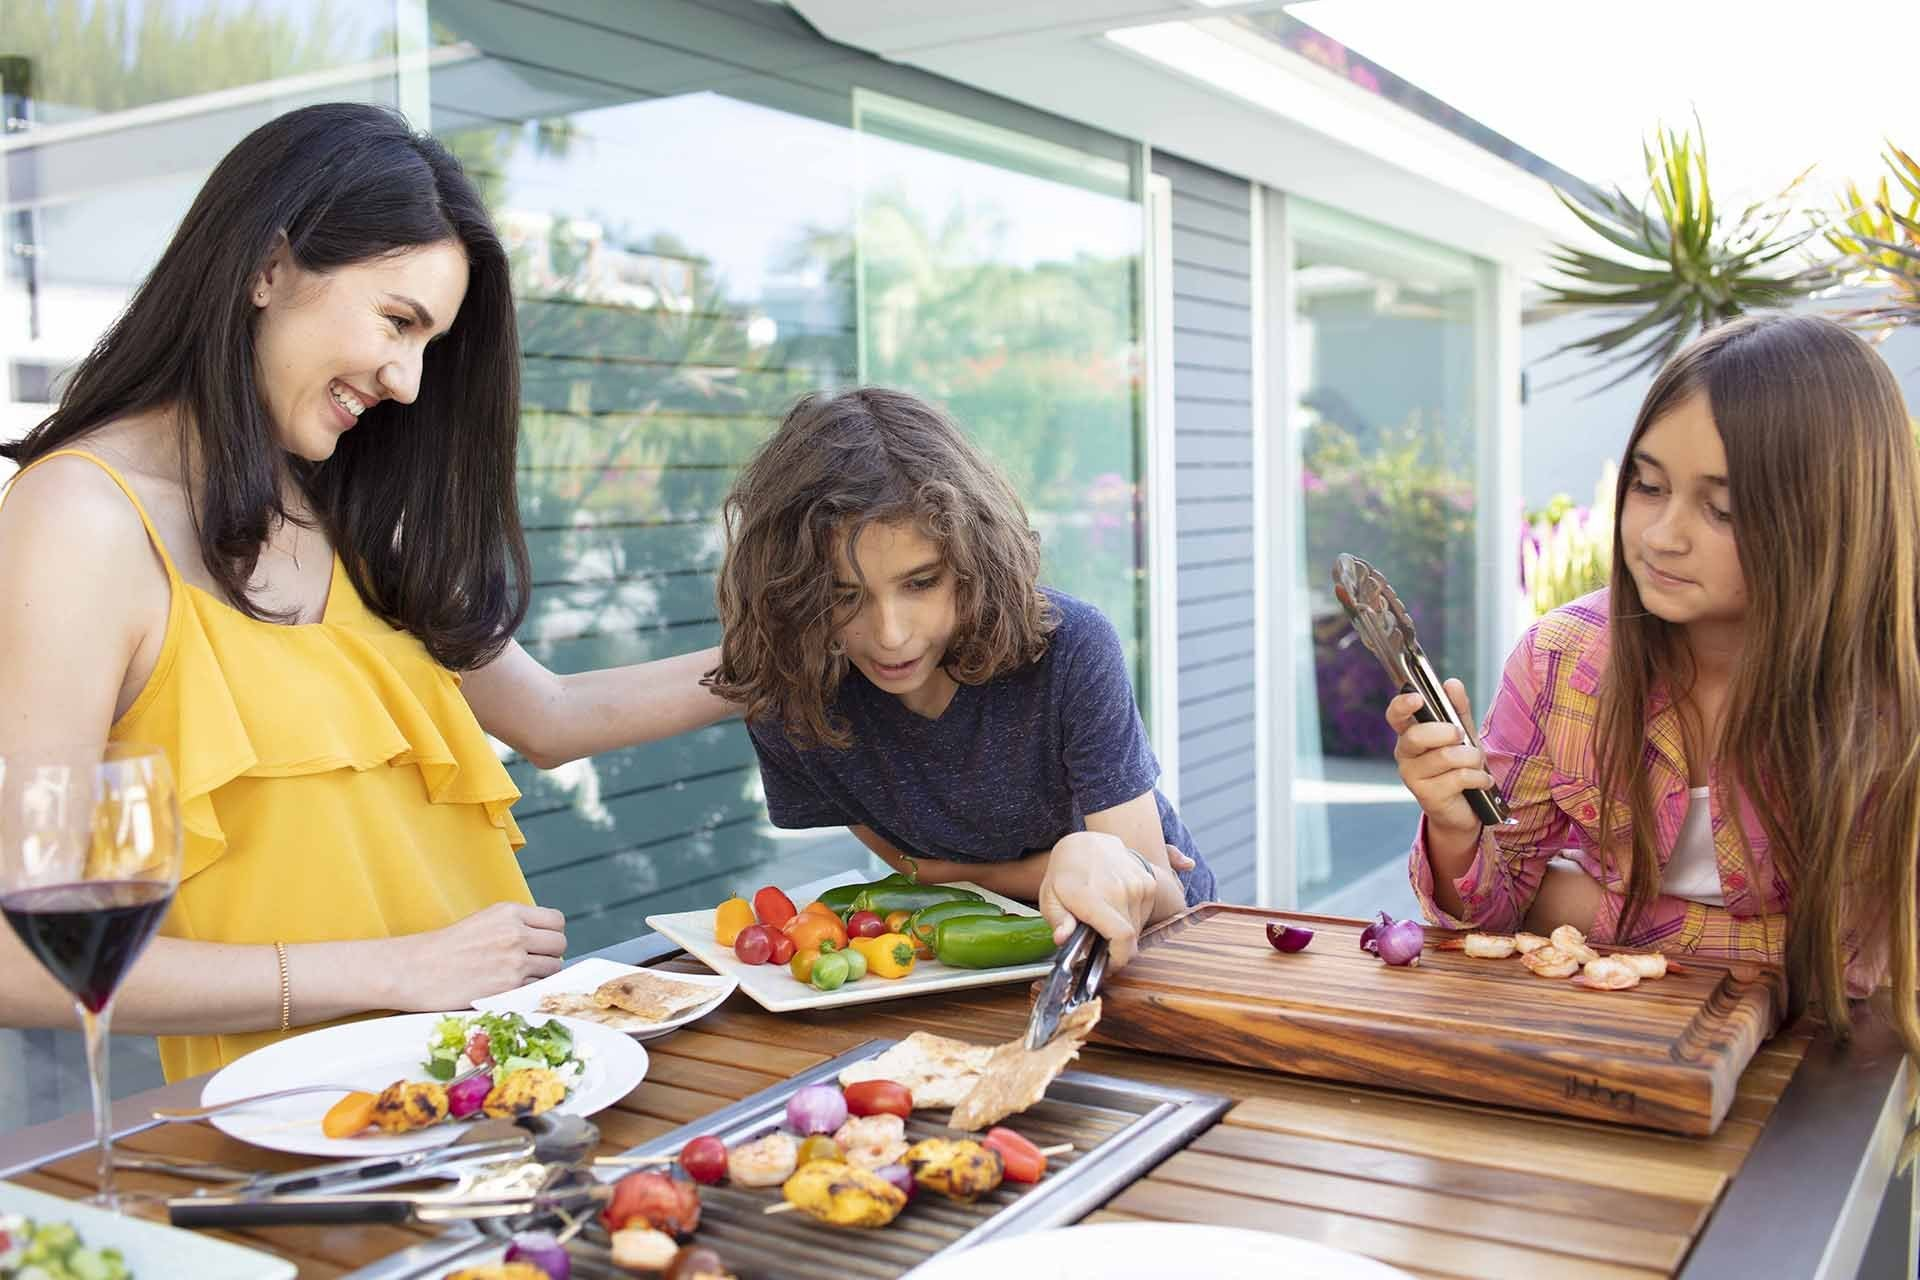 Dinnertime Fun - 5 Ways to Engage Your Kids at the Table